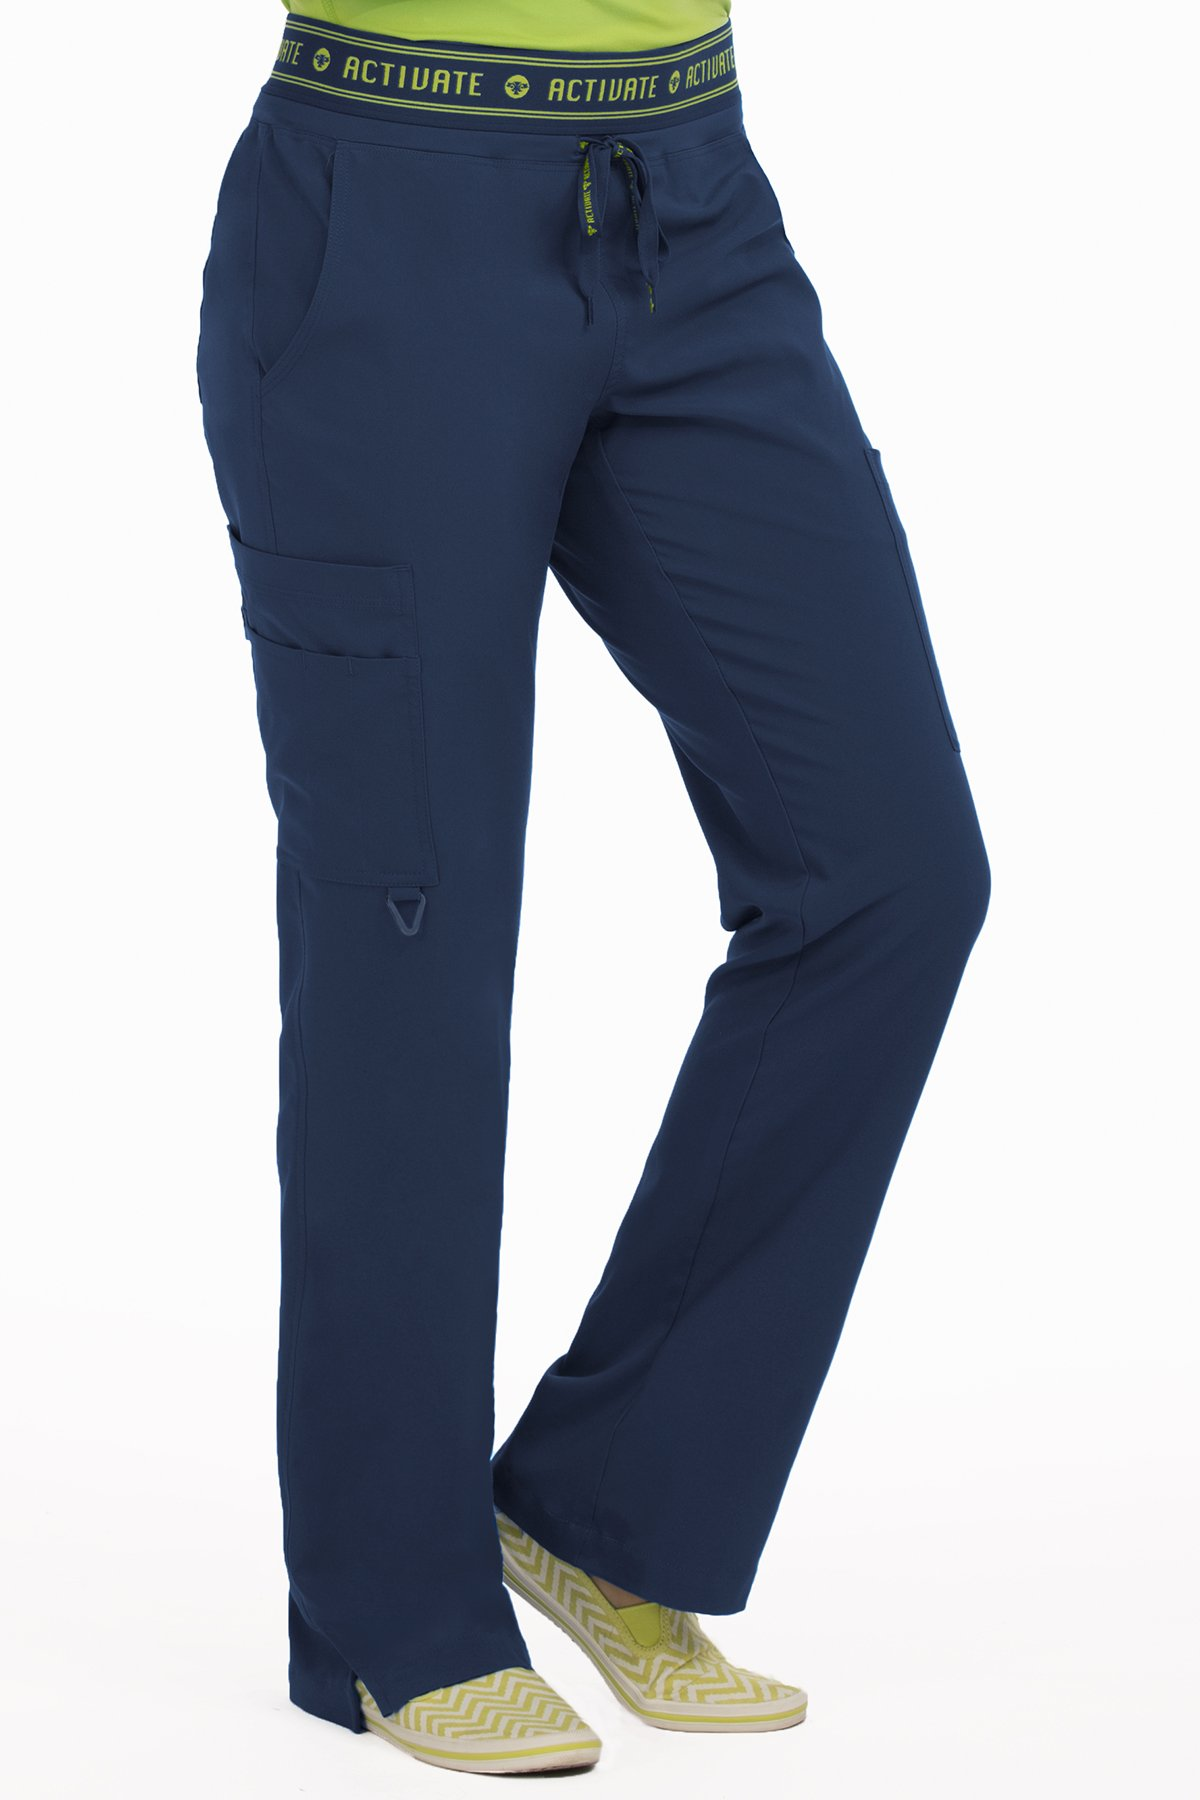 Med Couture Women's 'Activate' Flow Yoga Cargo Scrub Pant, Navy, X-Small Petite by Med Couture (Image #1)